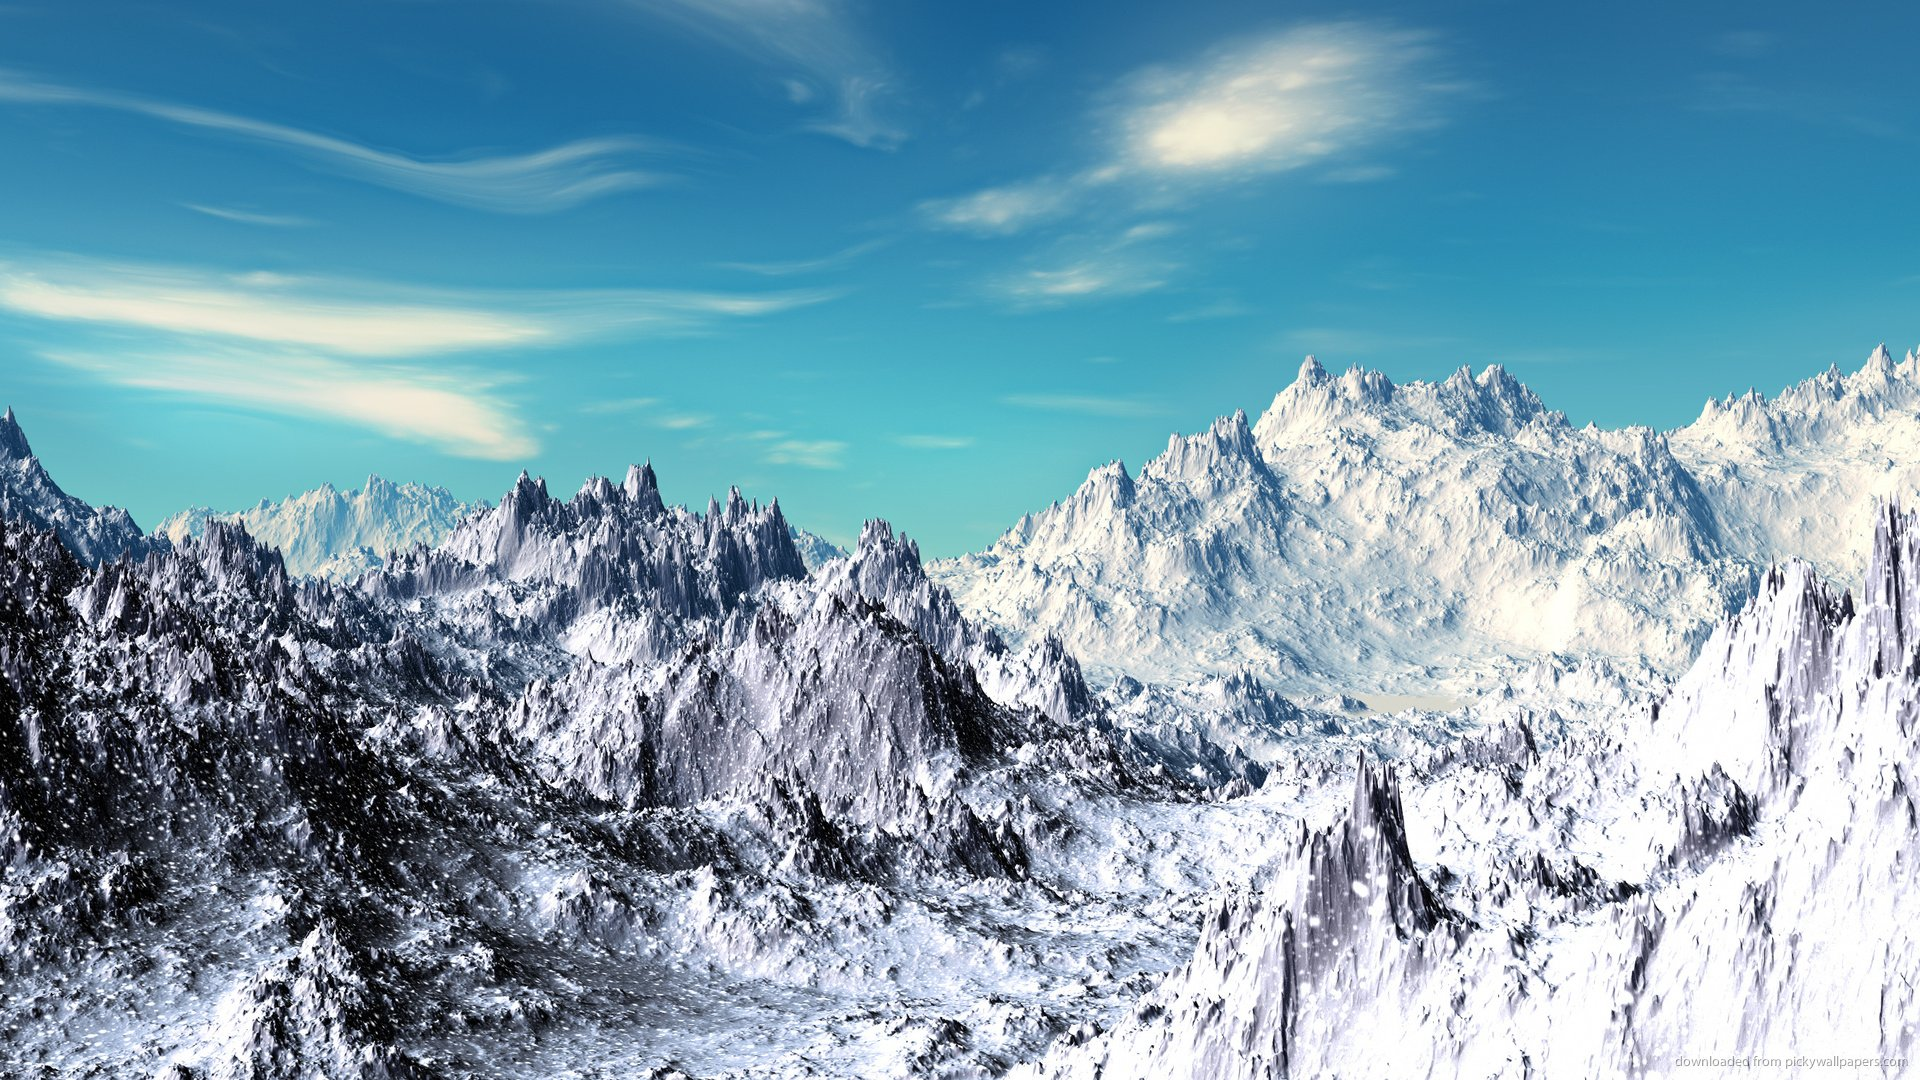 Snow hd wallpaper wallpapersafari - Hd snow mountain wallpaper ...